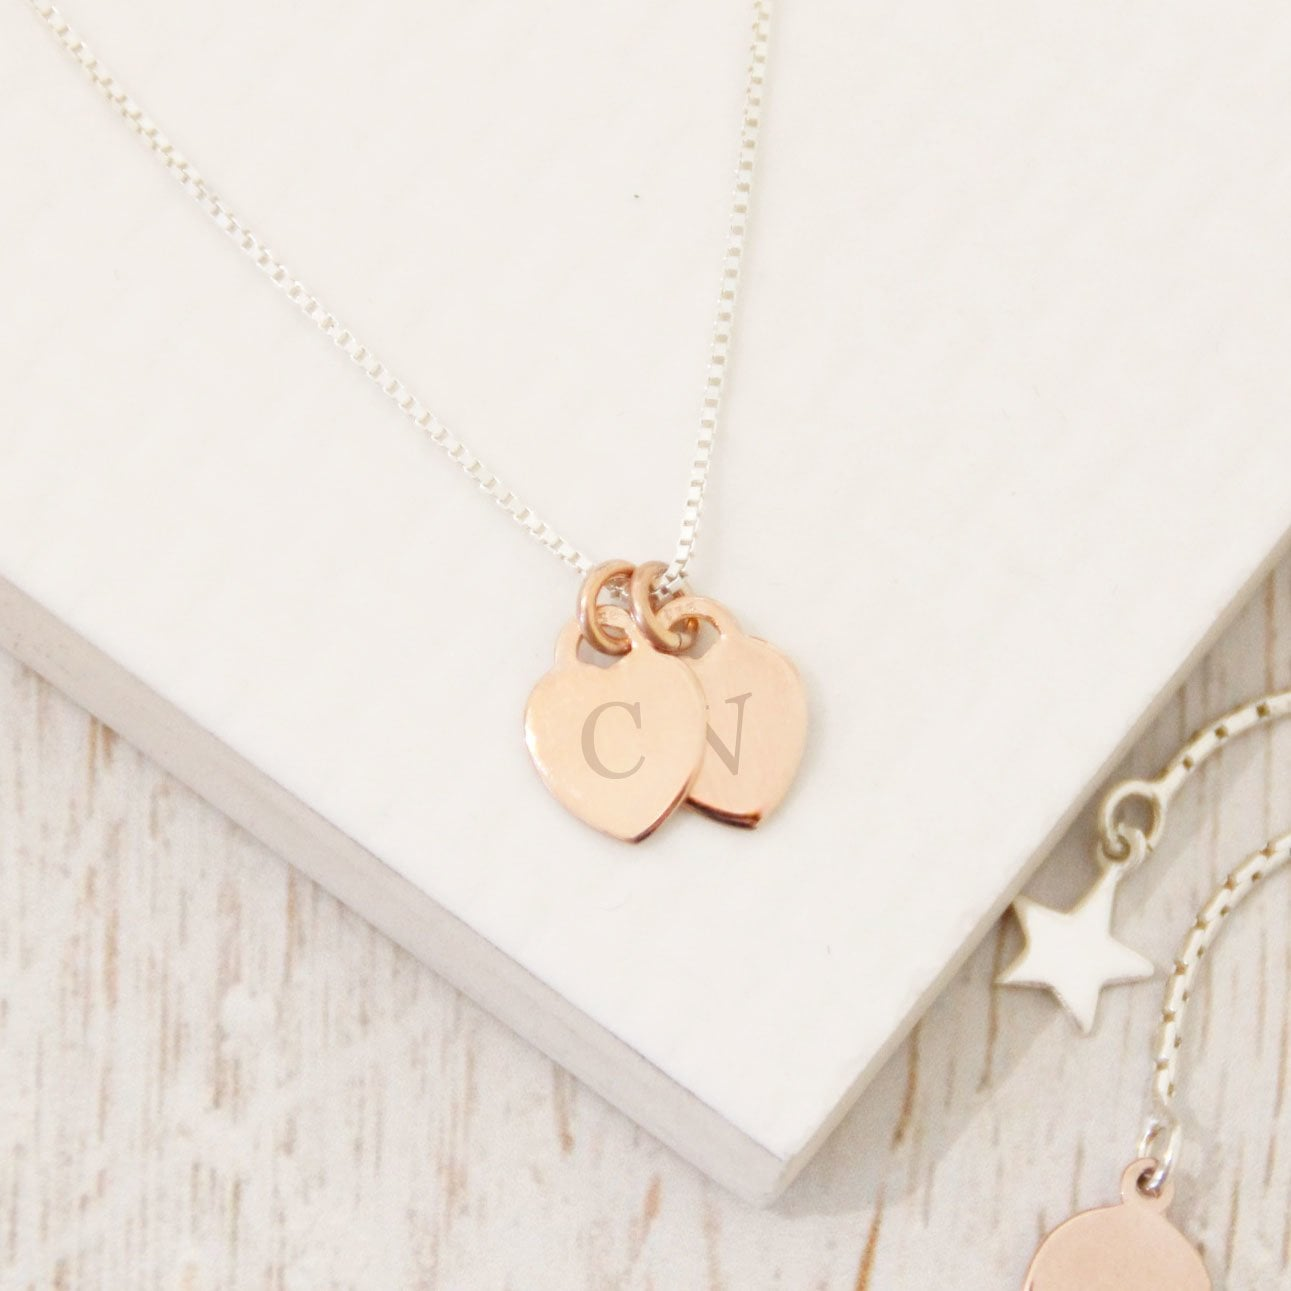 Create Your Own Heart Initial Necklace The Perfect Keepsake Gift